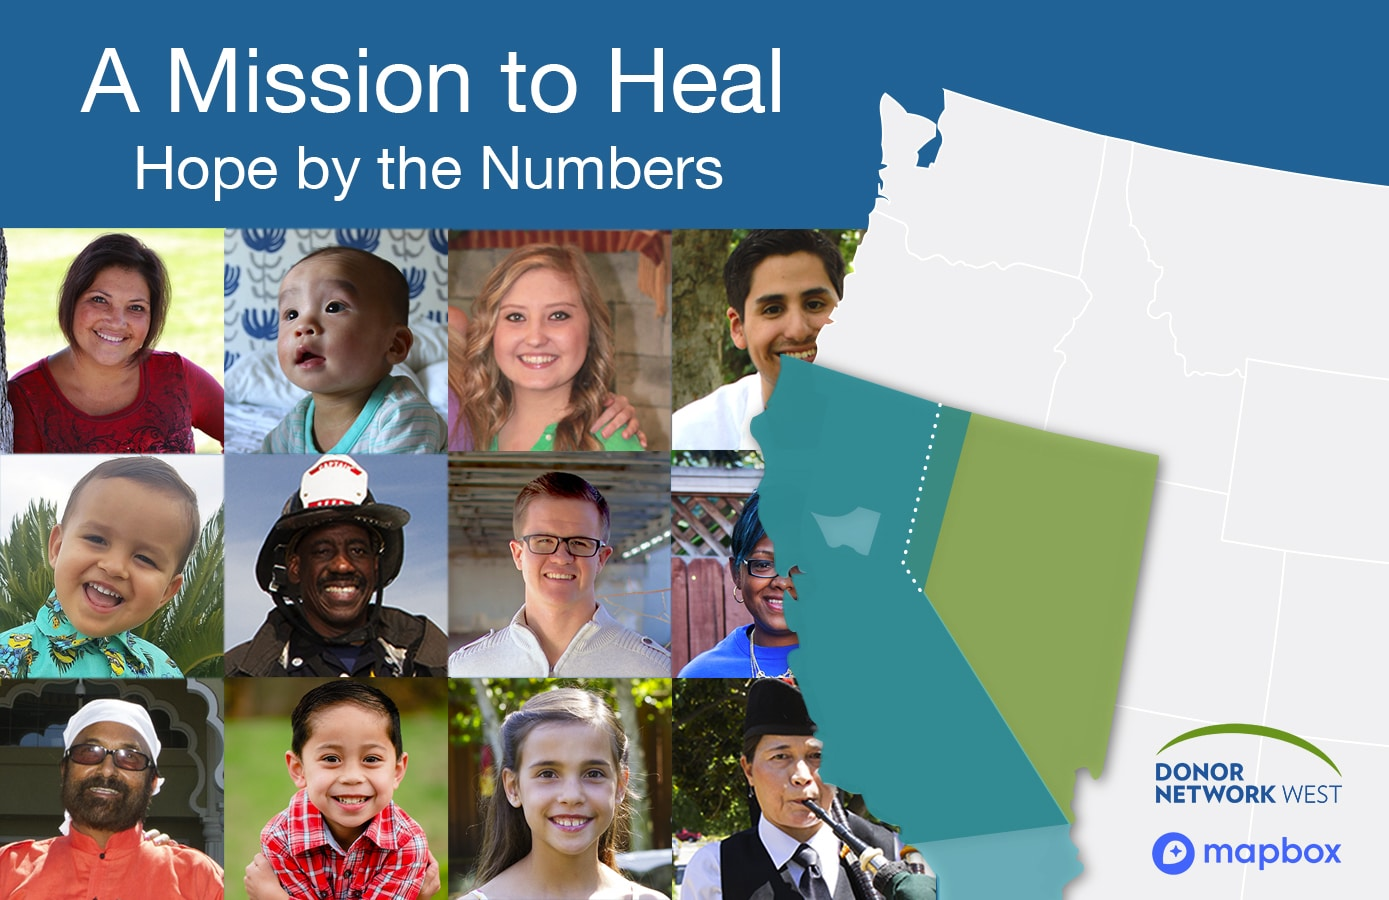 A Mission to Heal: A Donor Network West and Mapbox Innovative Collaboration